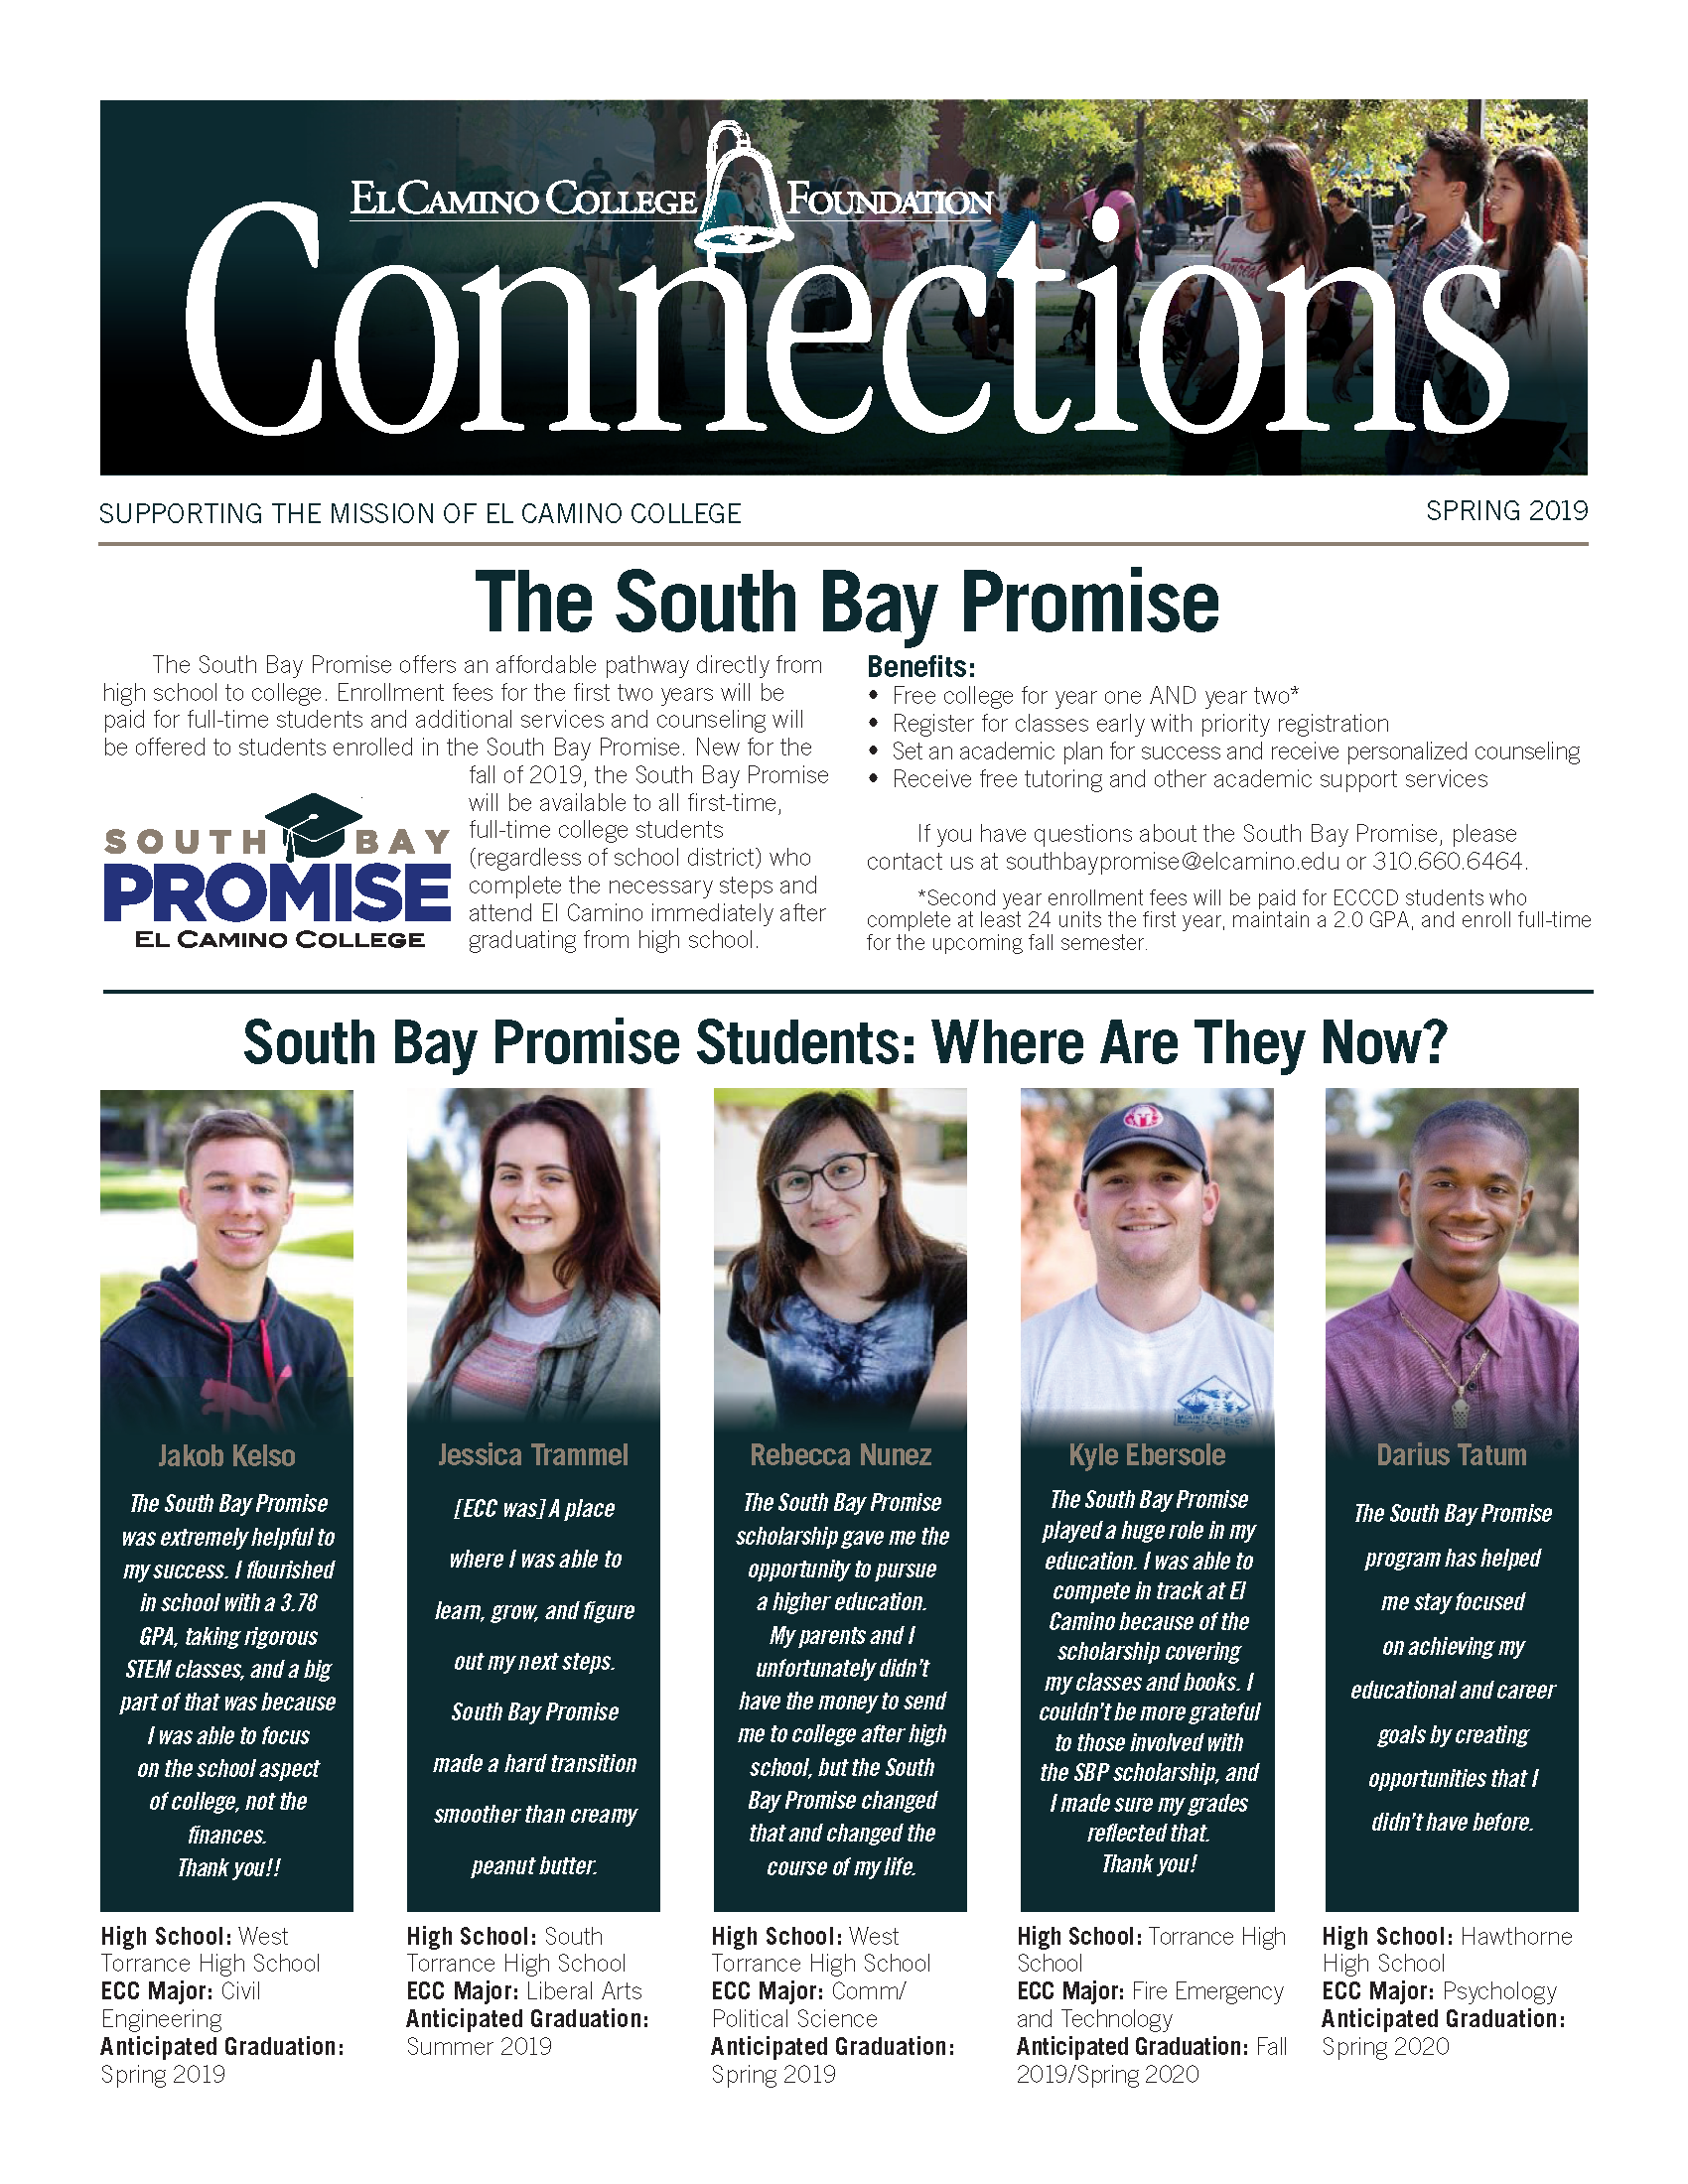 Spring 2019 Connections Newsletter